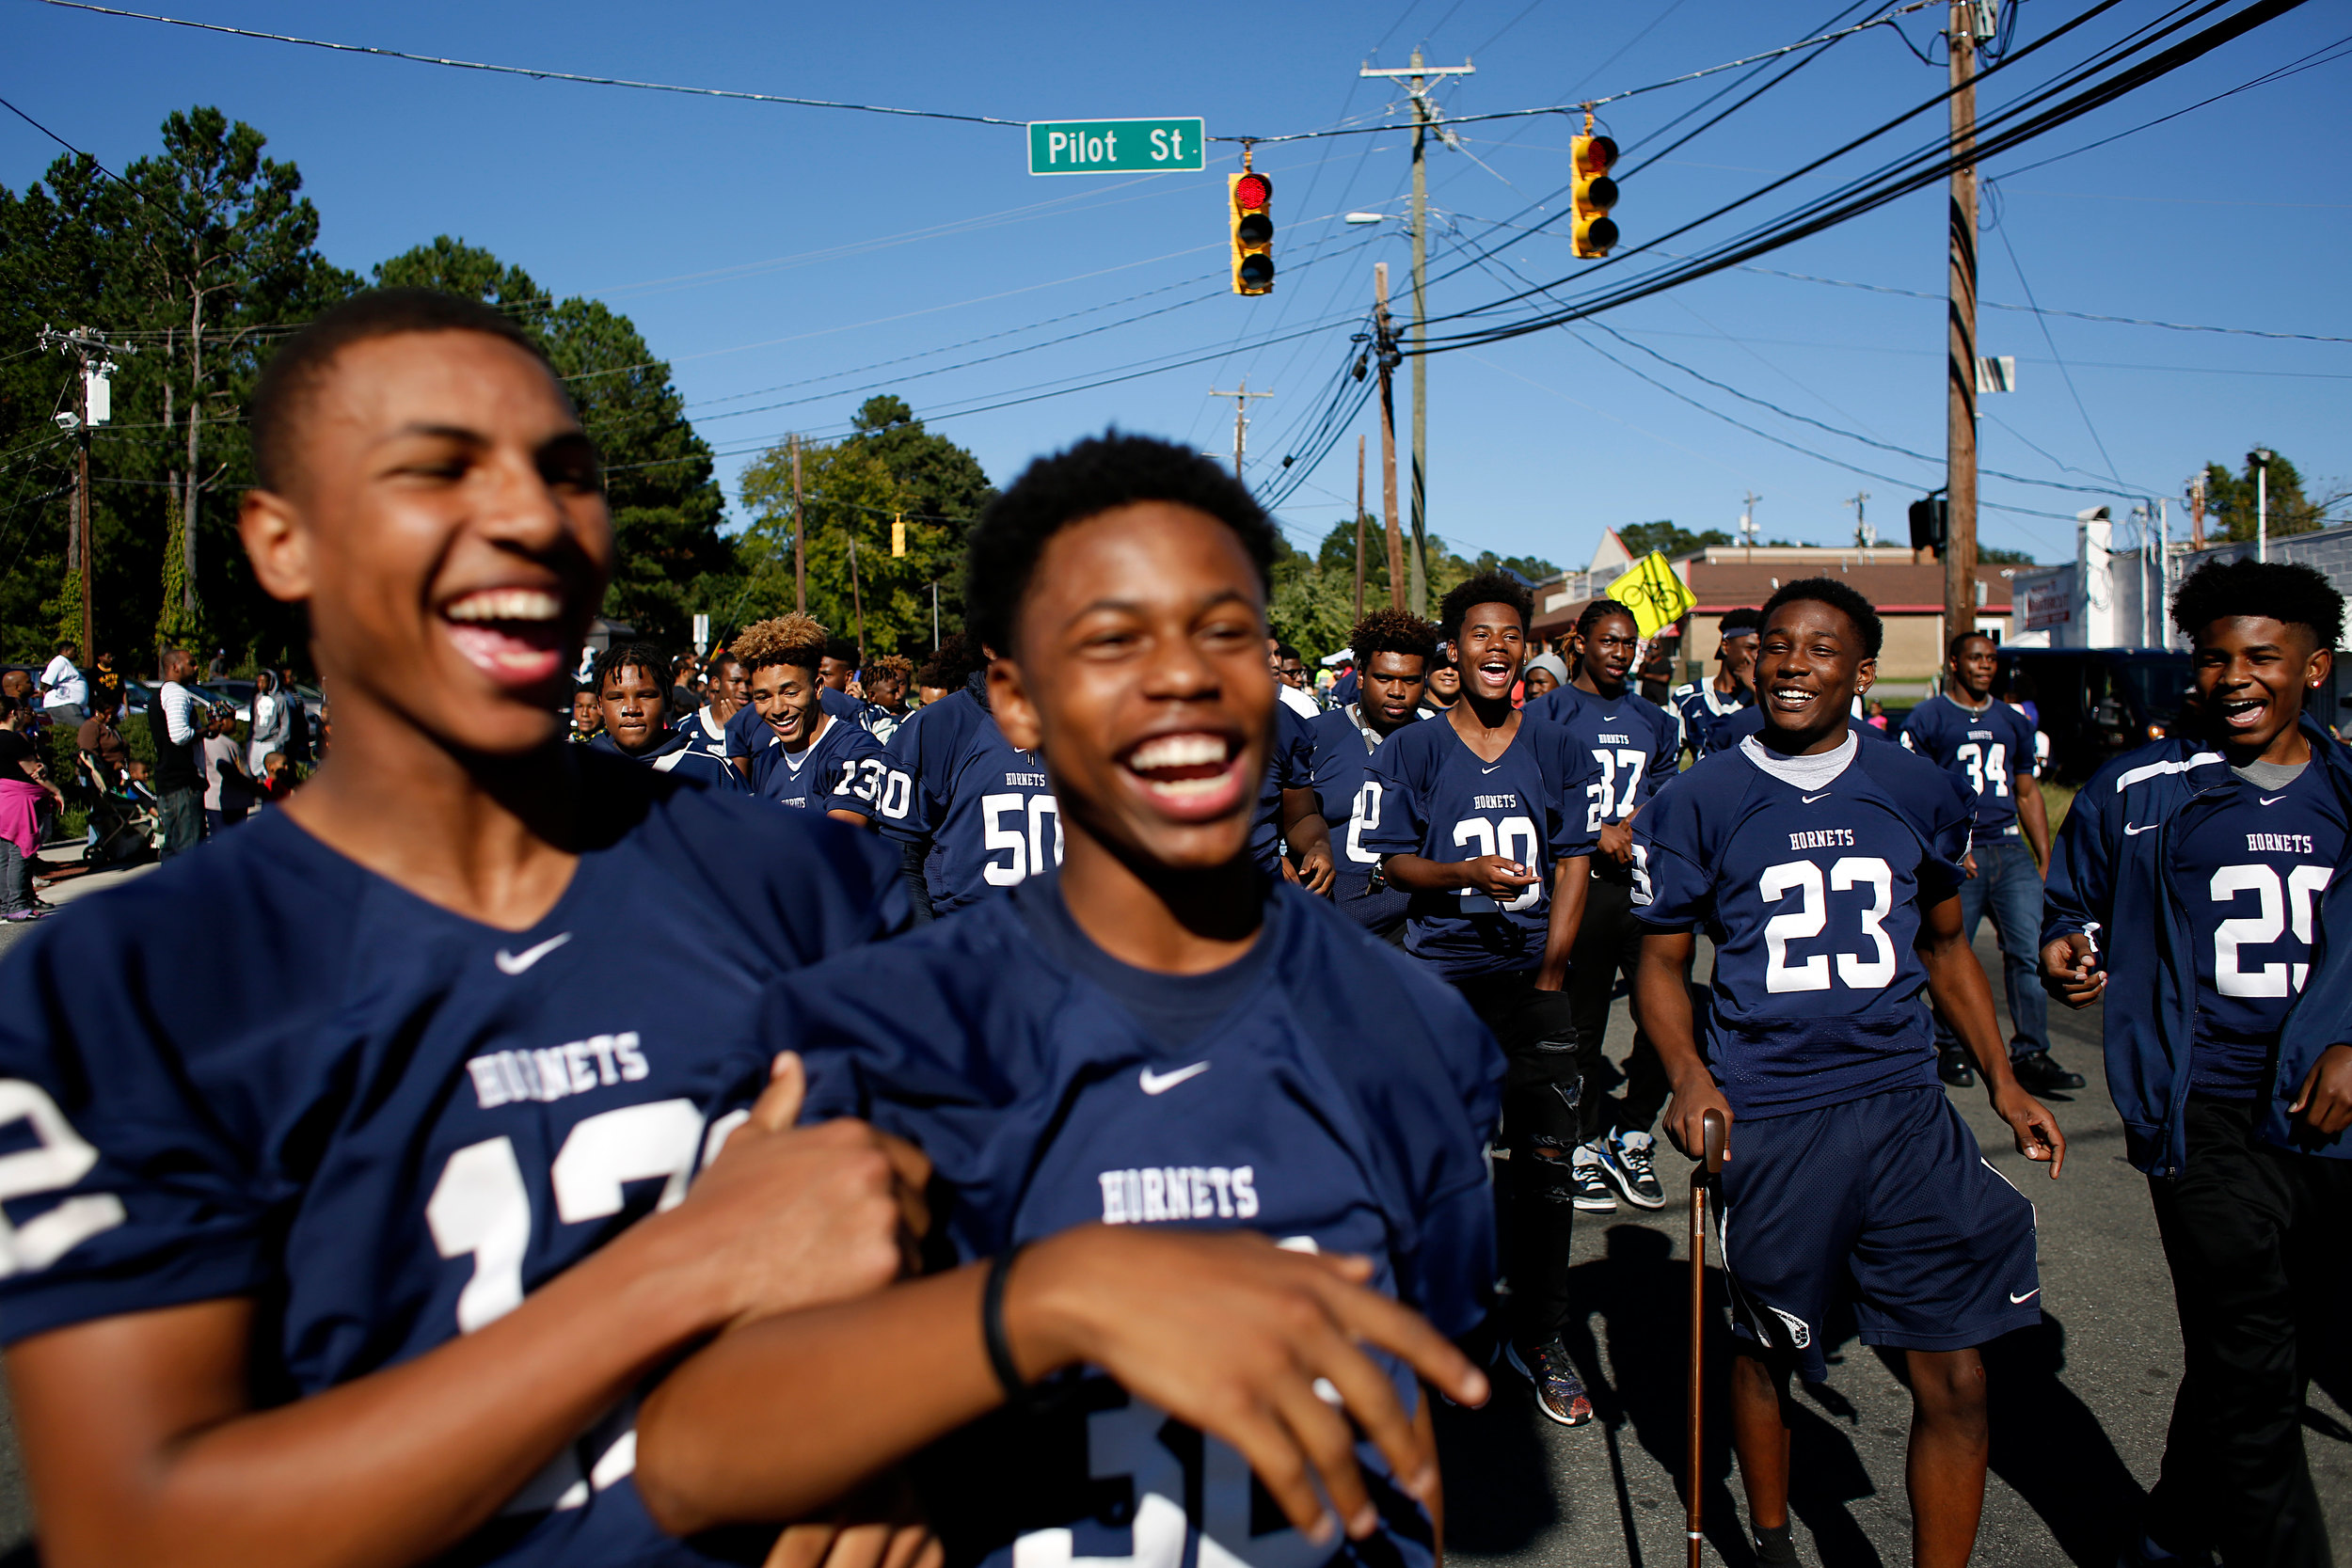 Arm in arm, Hillside's Randy Trice Jr., left, and Deshaun Mitchell walk down Fayetteville Street with teammates during the school's annual homecoming parade, Sunday afternoon, Oct. 9, 2016, in Durham, N.C. The parade wound its way down Fayetteville Street, from East Lawson Street to the high school.